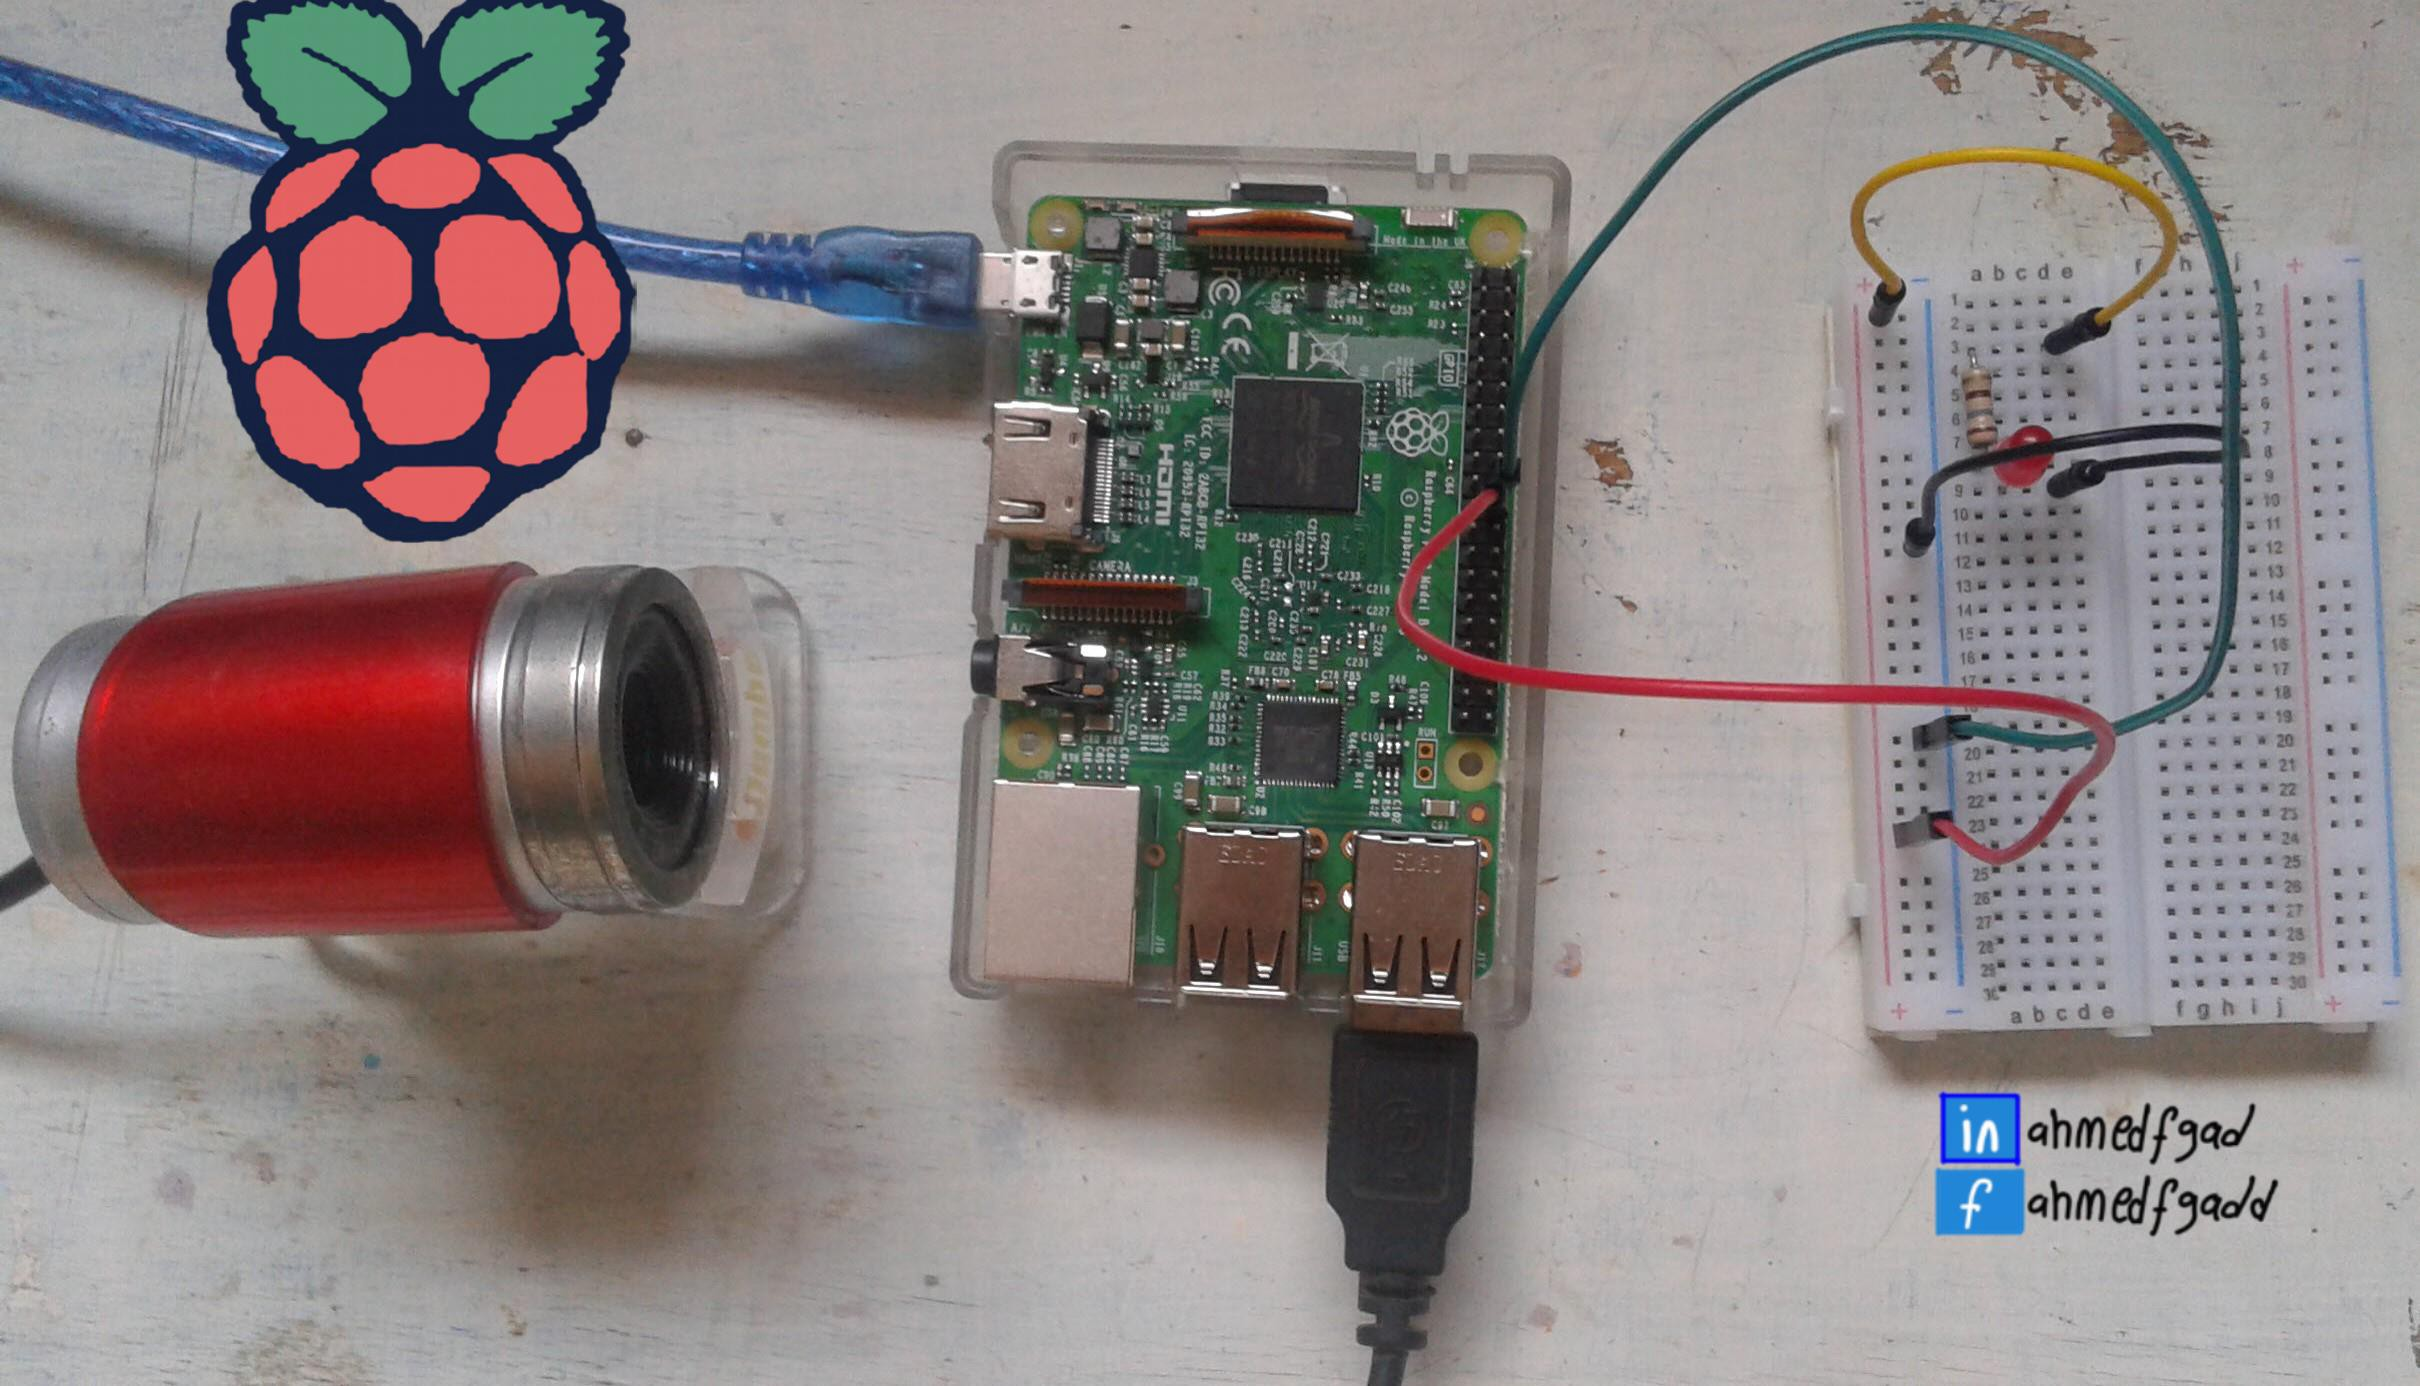 Building Surveillance System using USB Camera and Wireless